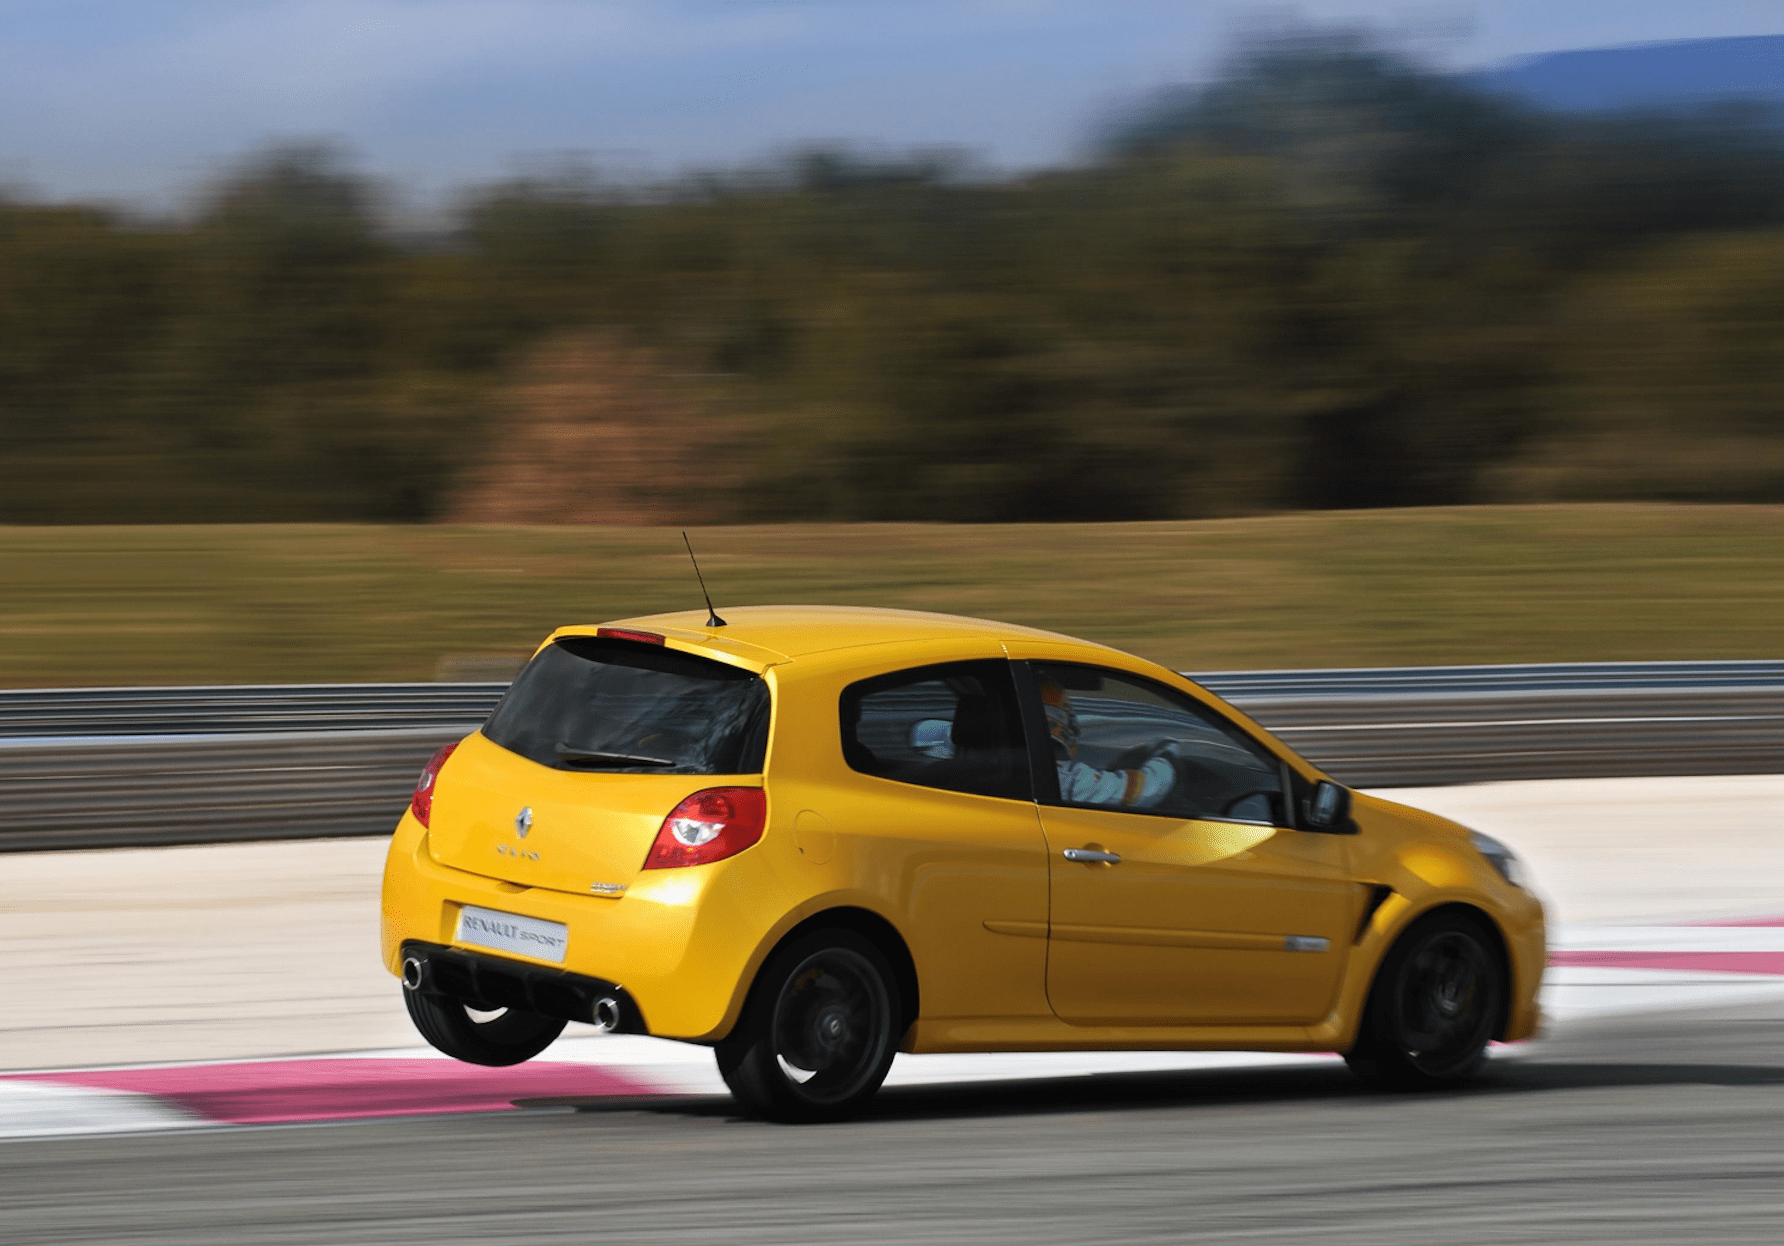 Renaultsport Clio in yellow driving around a racetrack